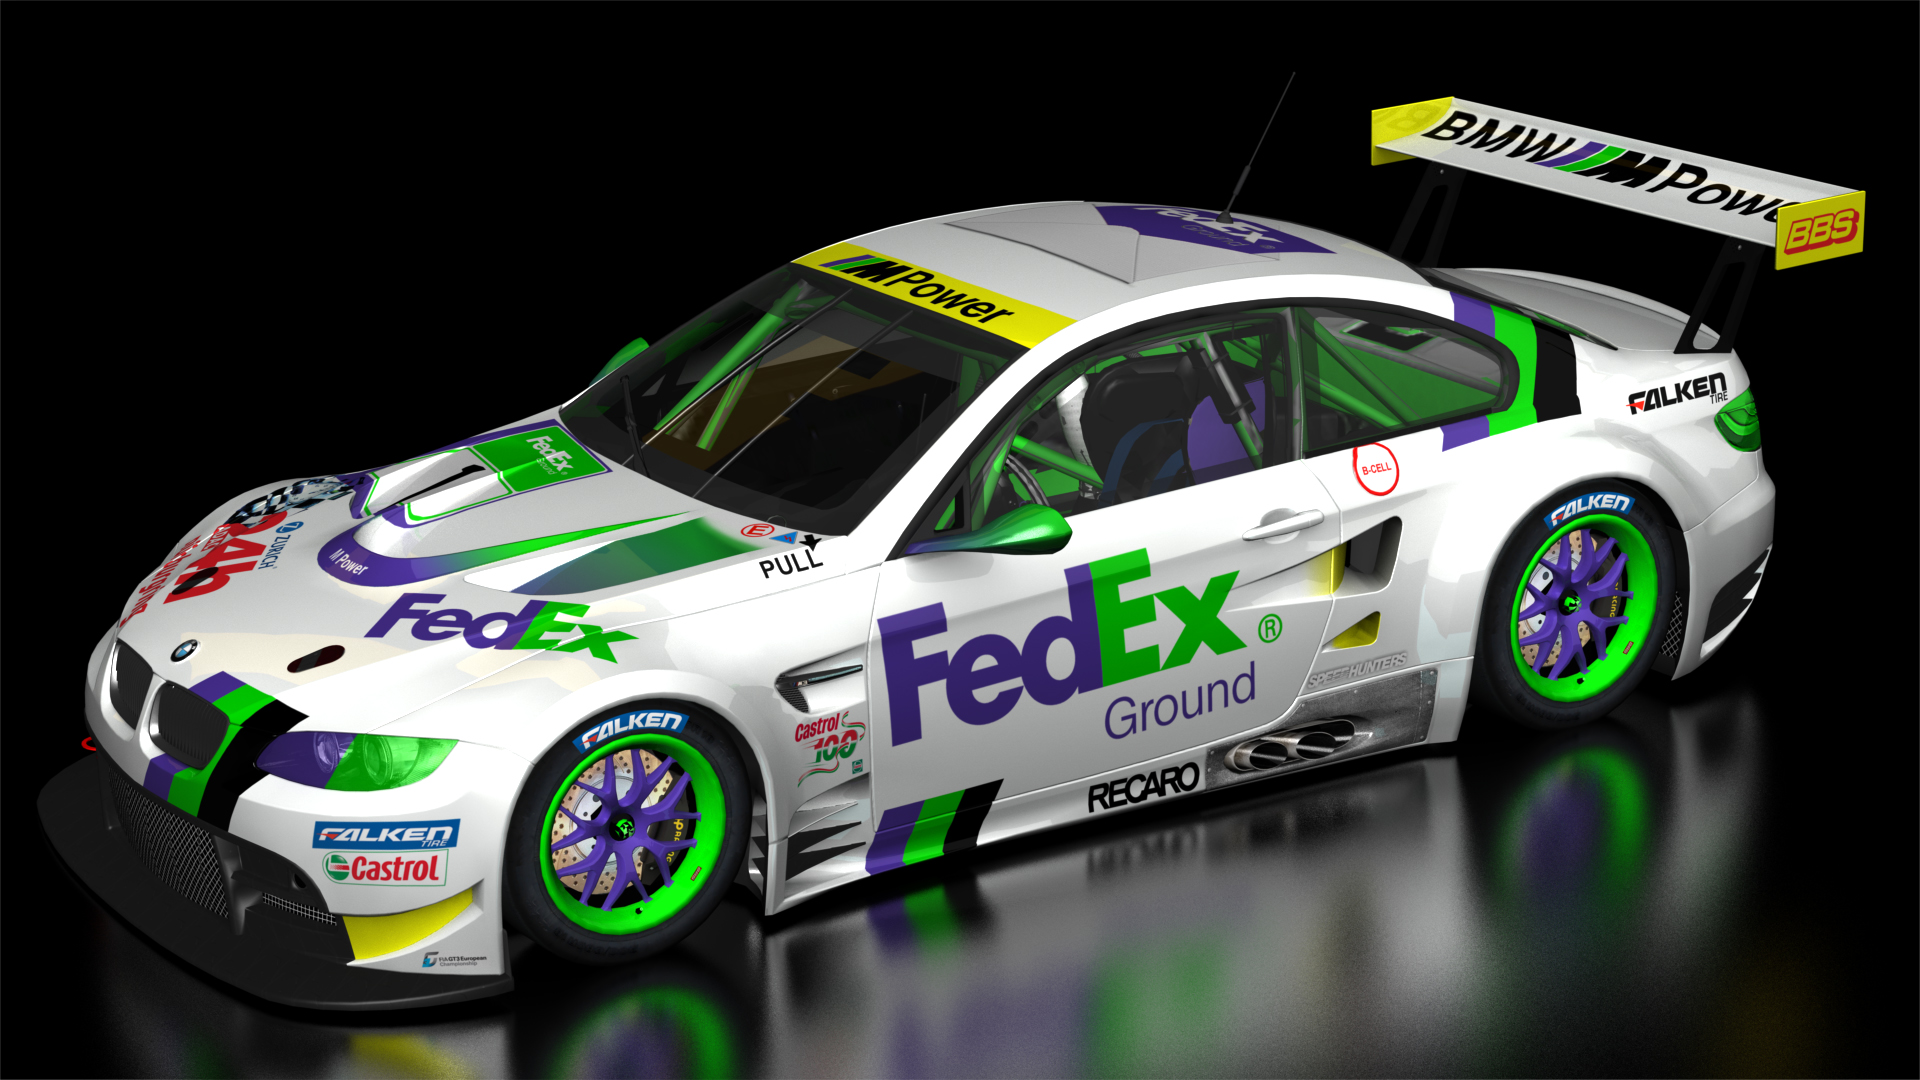 White Car Names >> BMW GT2 Fedex Racing Team + Livery | RaceDepartment